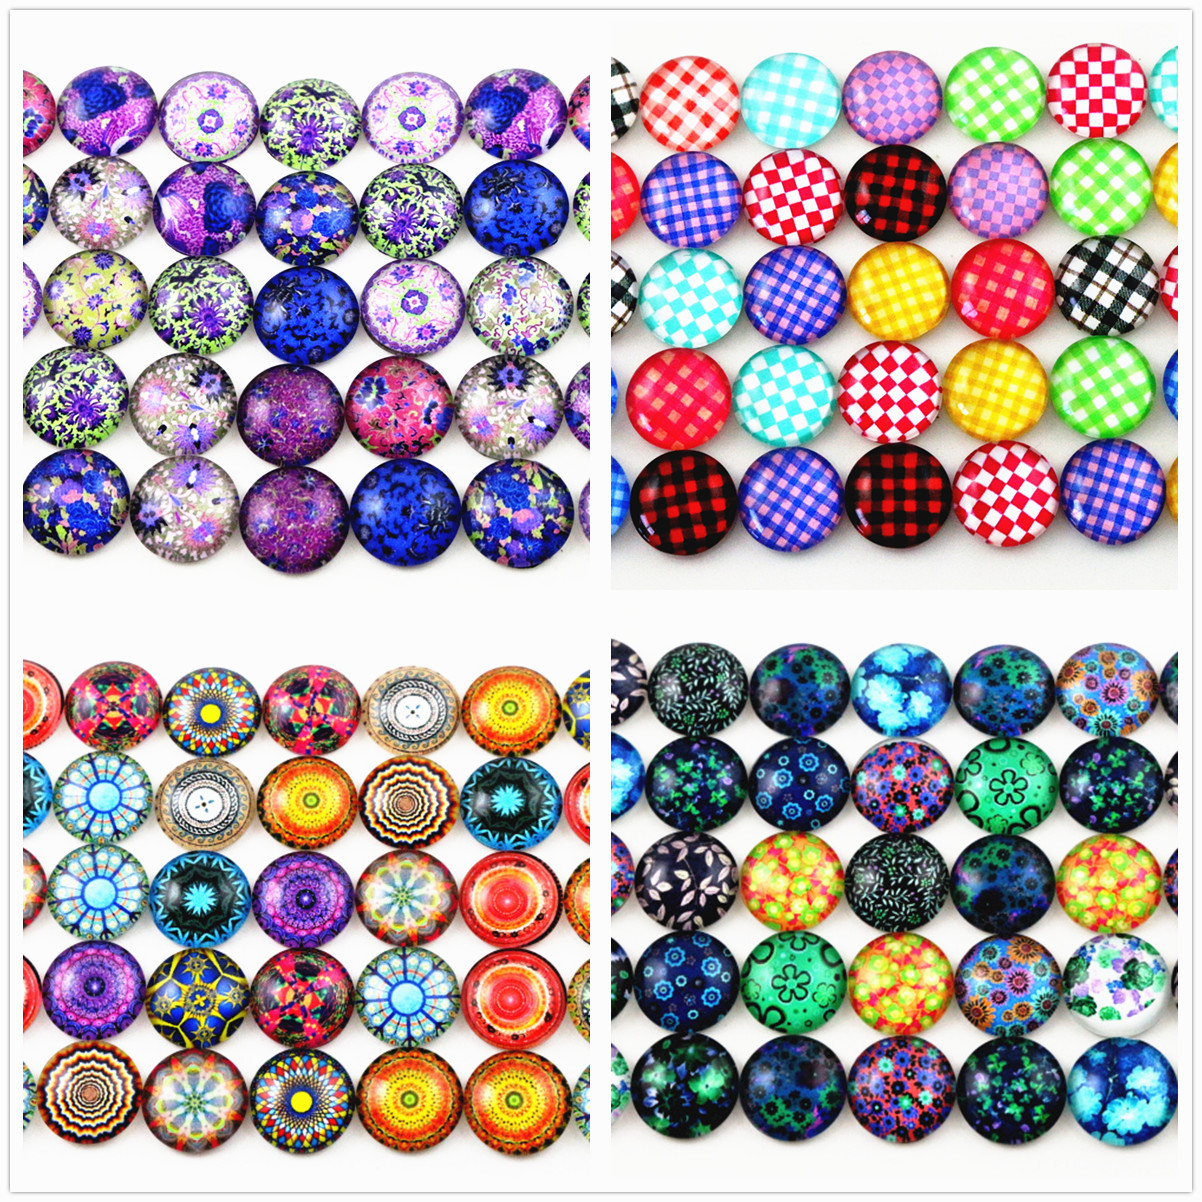 Hot Sale 50pcs 12mm  4 Style New Fashion Mixed Flower Handmade Photo Glass Cabochons Pattern Domed Jewelry Accessories Supplies